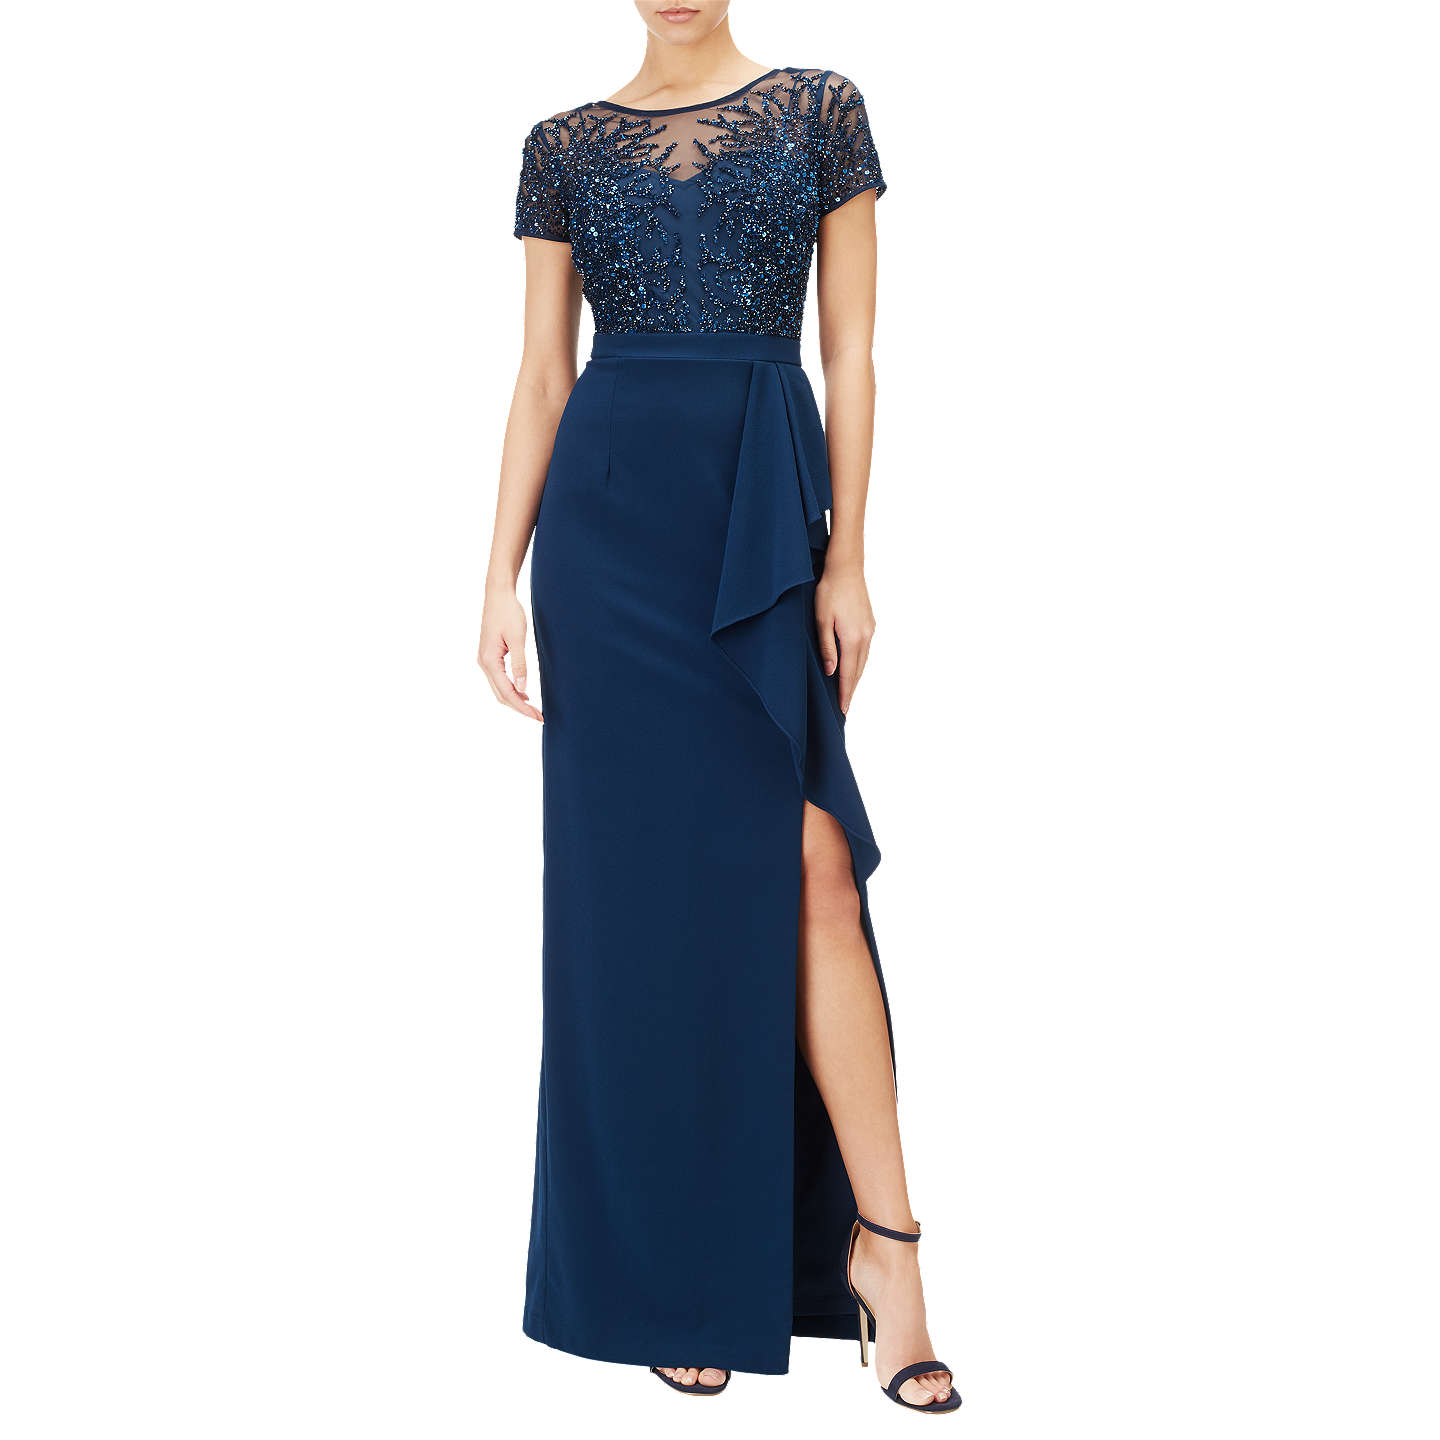 Adrianna Papell Beaded Gown, Deep Blue by Adrianna Papell